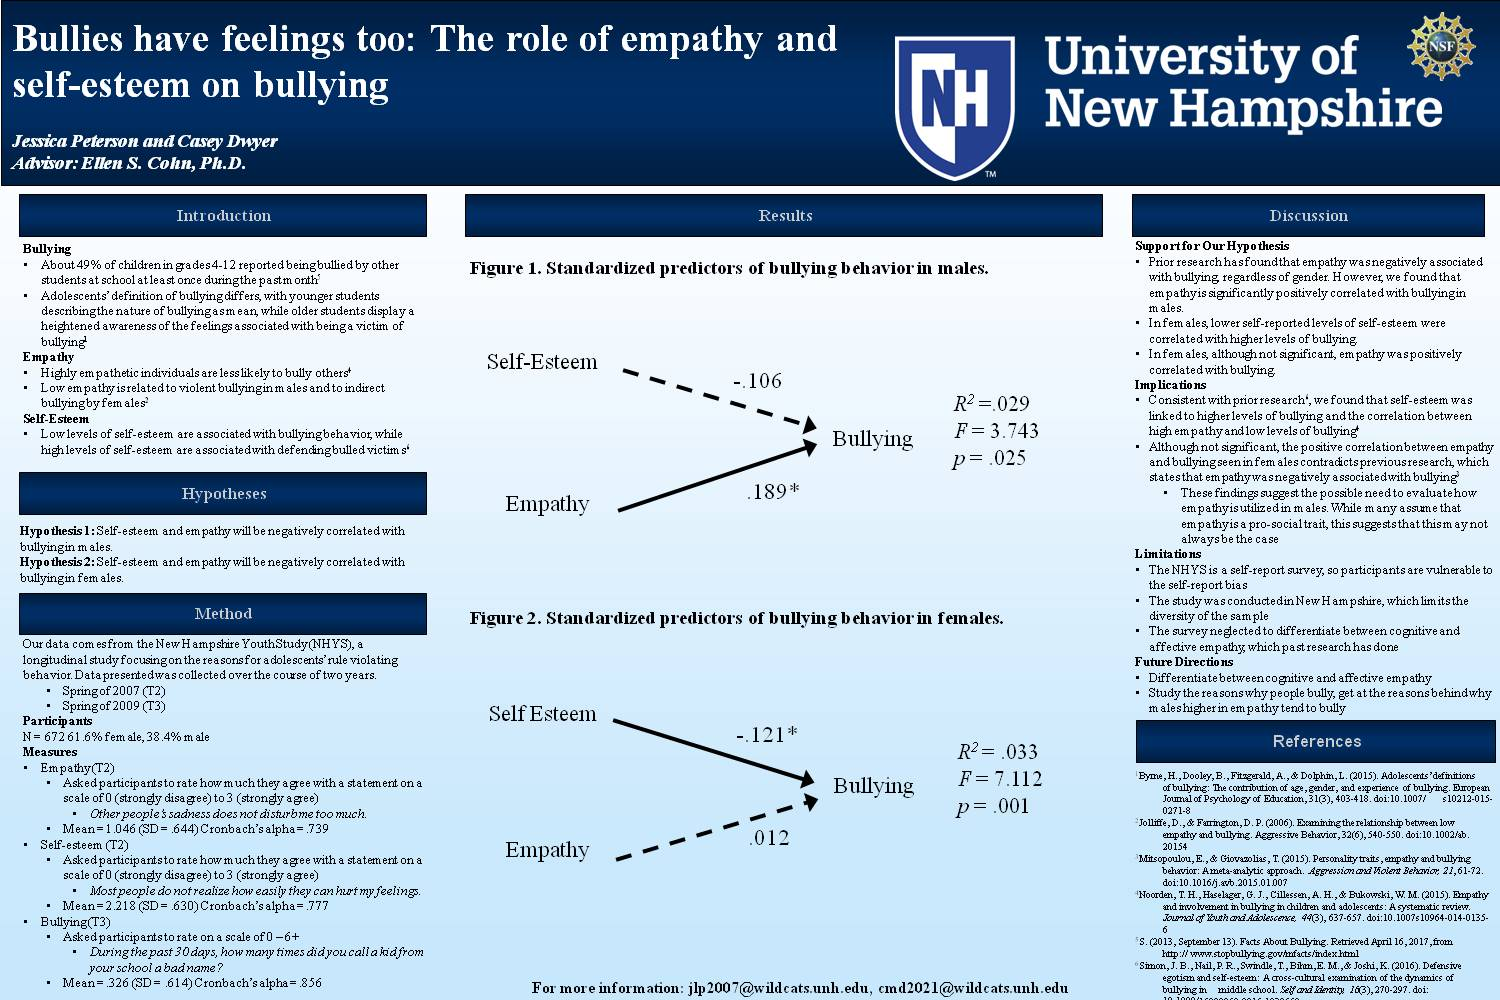 Bullies Have Feelings Too: The Role Of Empathy And Self-Esteem On Bullying by jlp2007